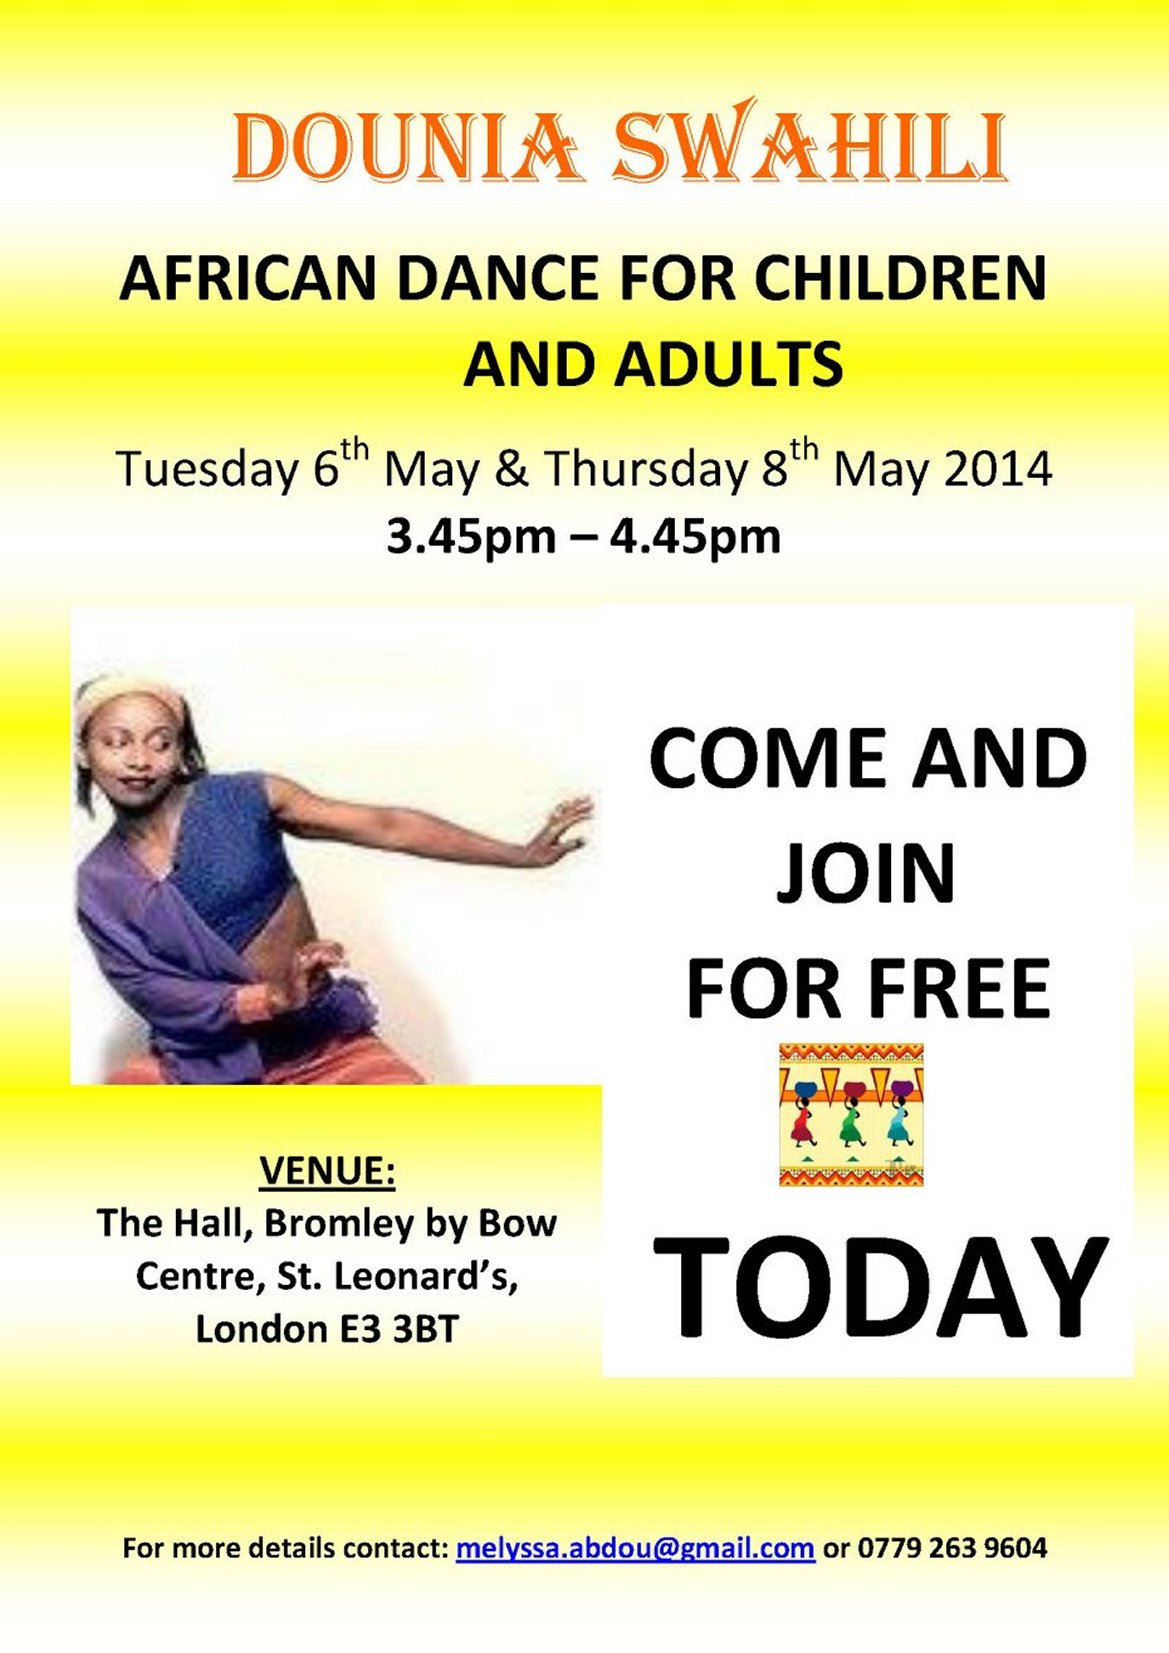 african dance childadult may14 1